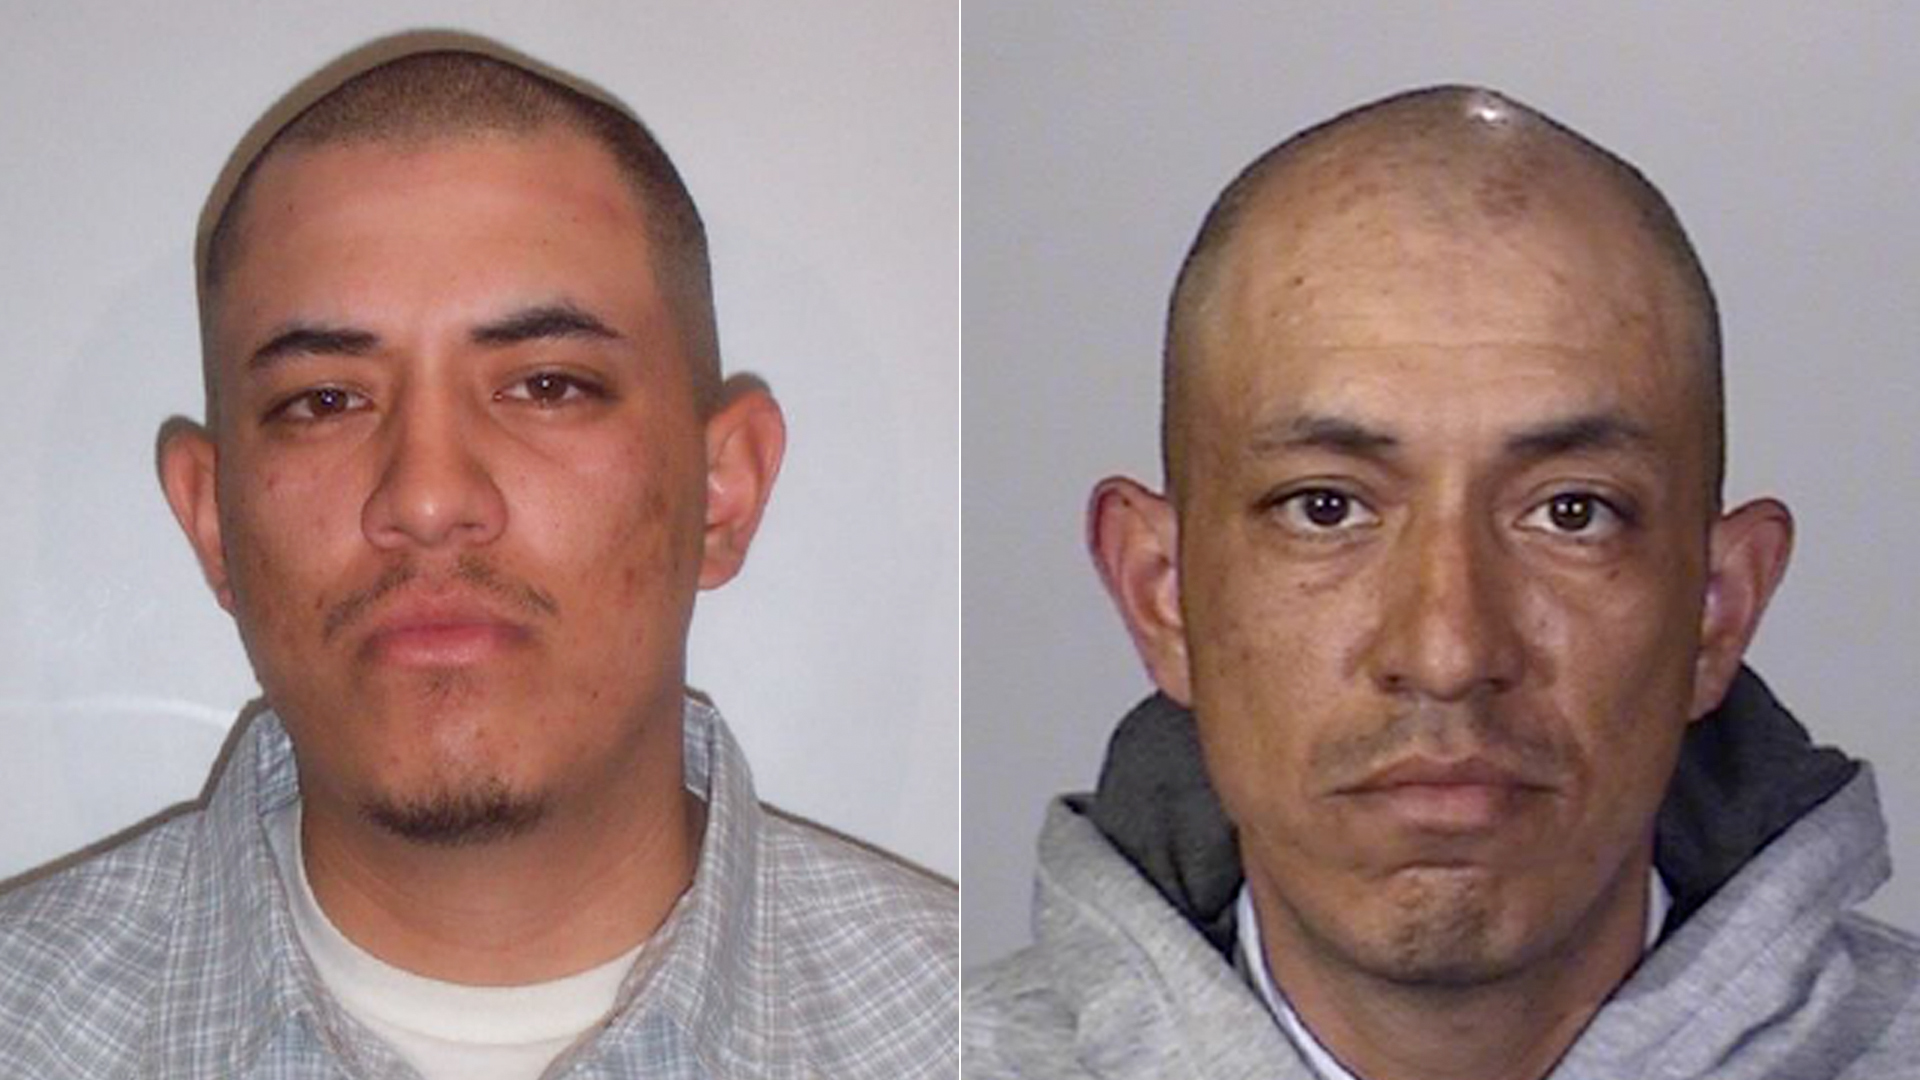 Rodolfo Fernandez Franco is shown in photos from 2003 and 2021 released by the Ventura County District Attorney's Office on May 24, 2021.